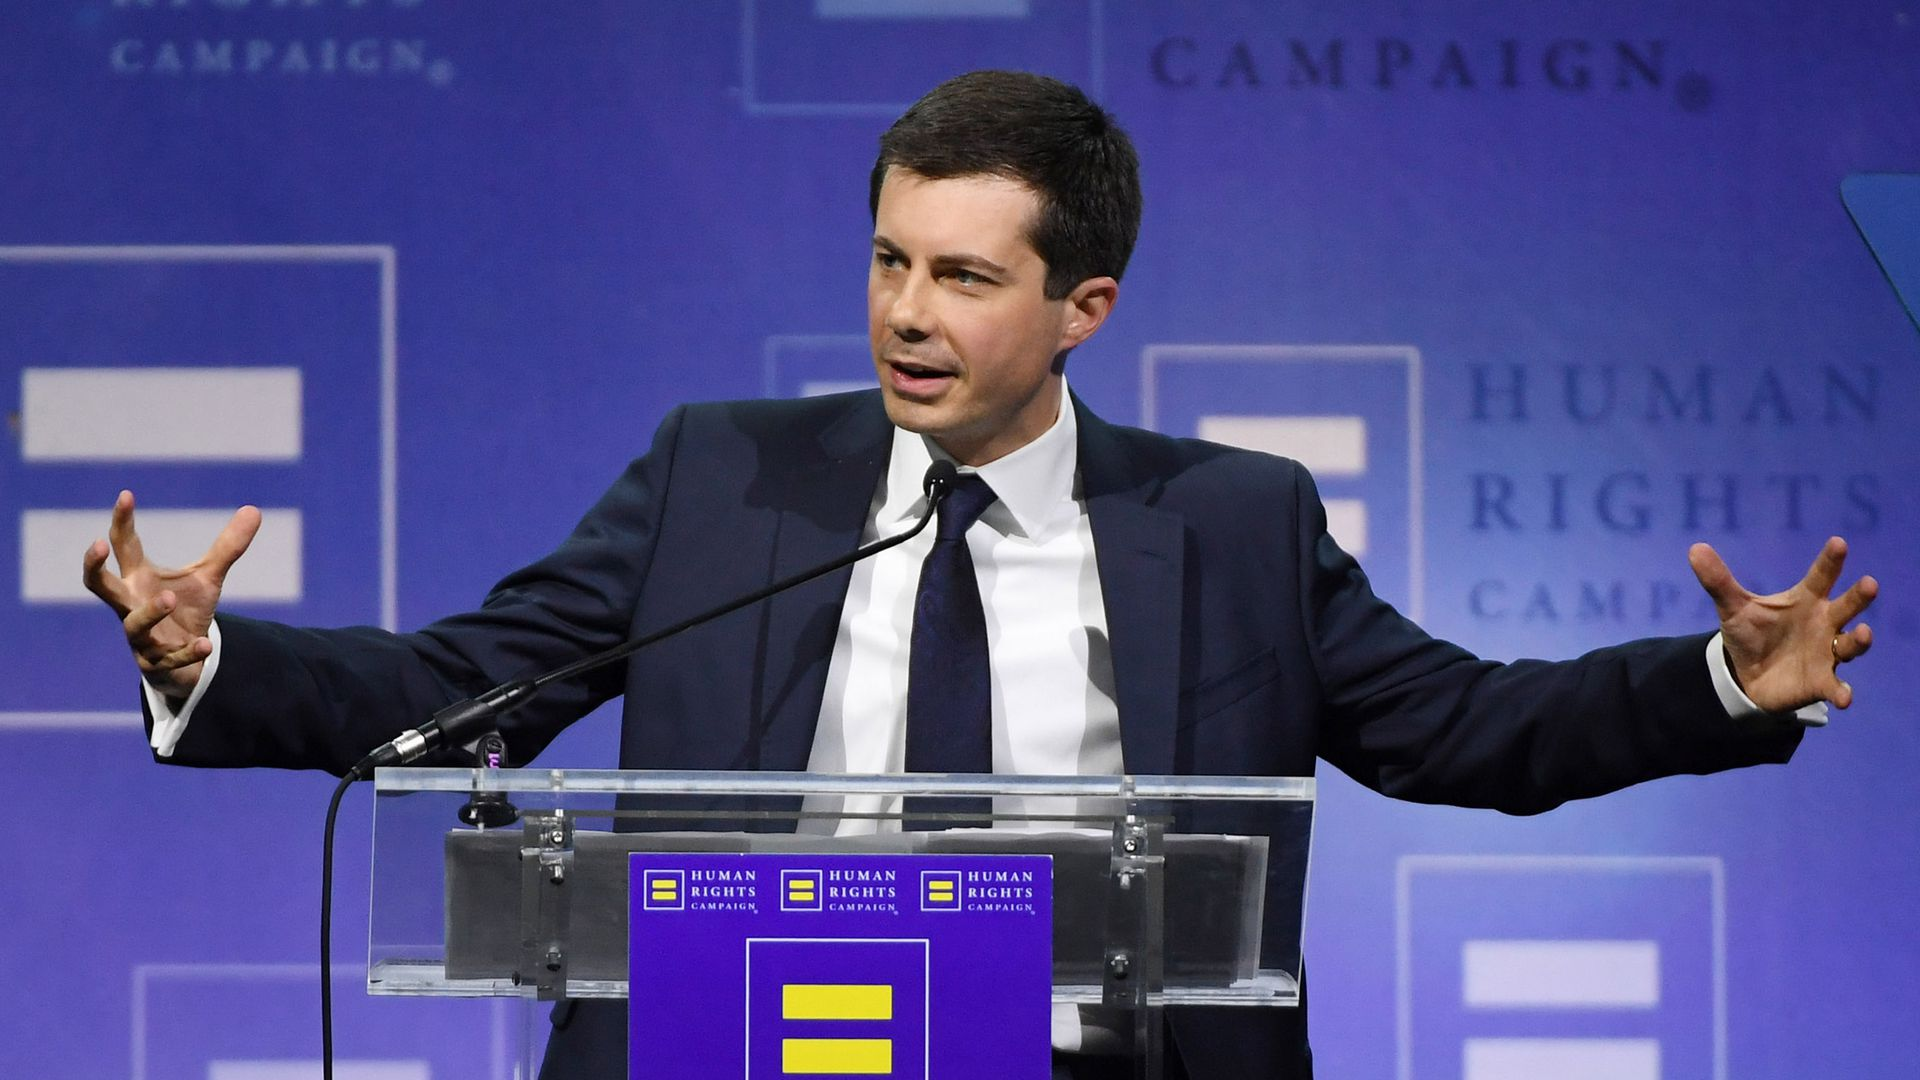 South Bend, Indiana Mayor Pete Buttigieg delivers a keynote address at the Human Rights Campaign's (HRC) 14th annual Las Vegas Gala at Caesars Palace on May 11.